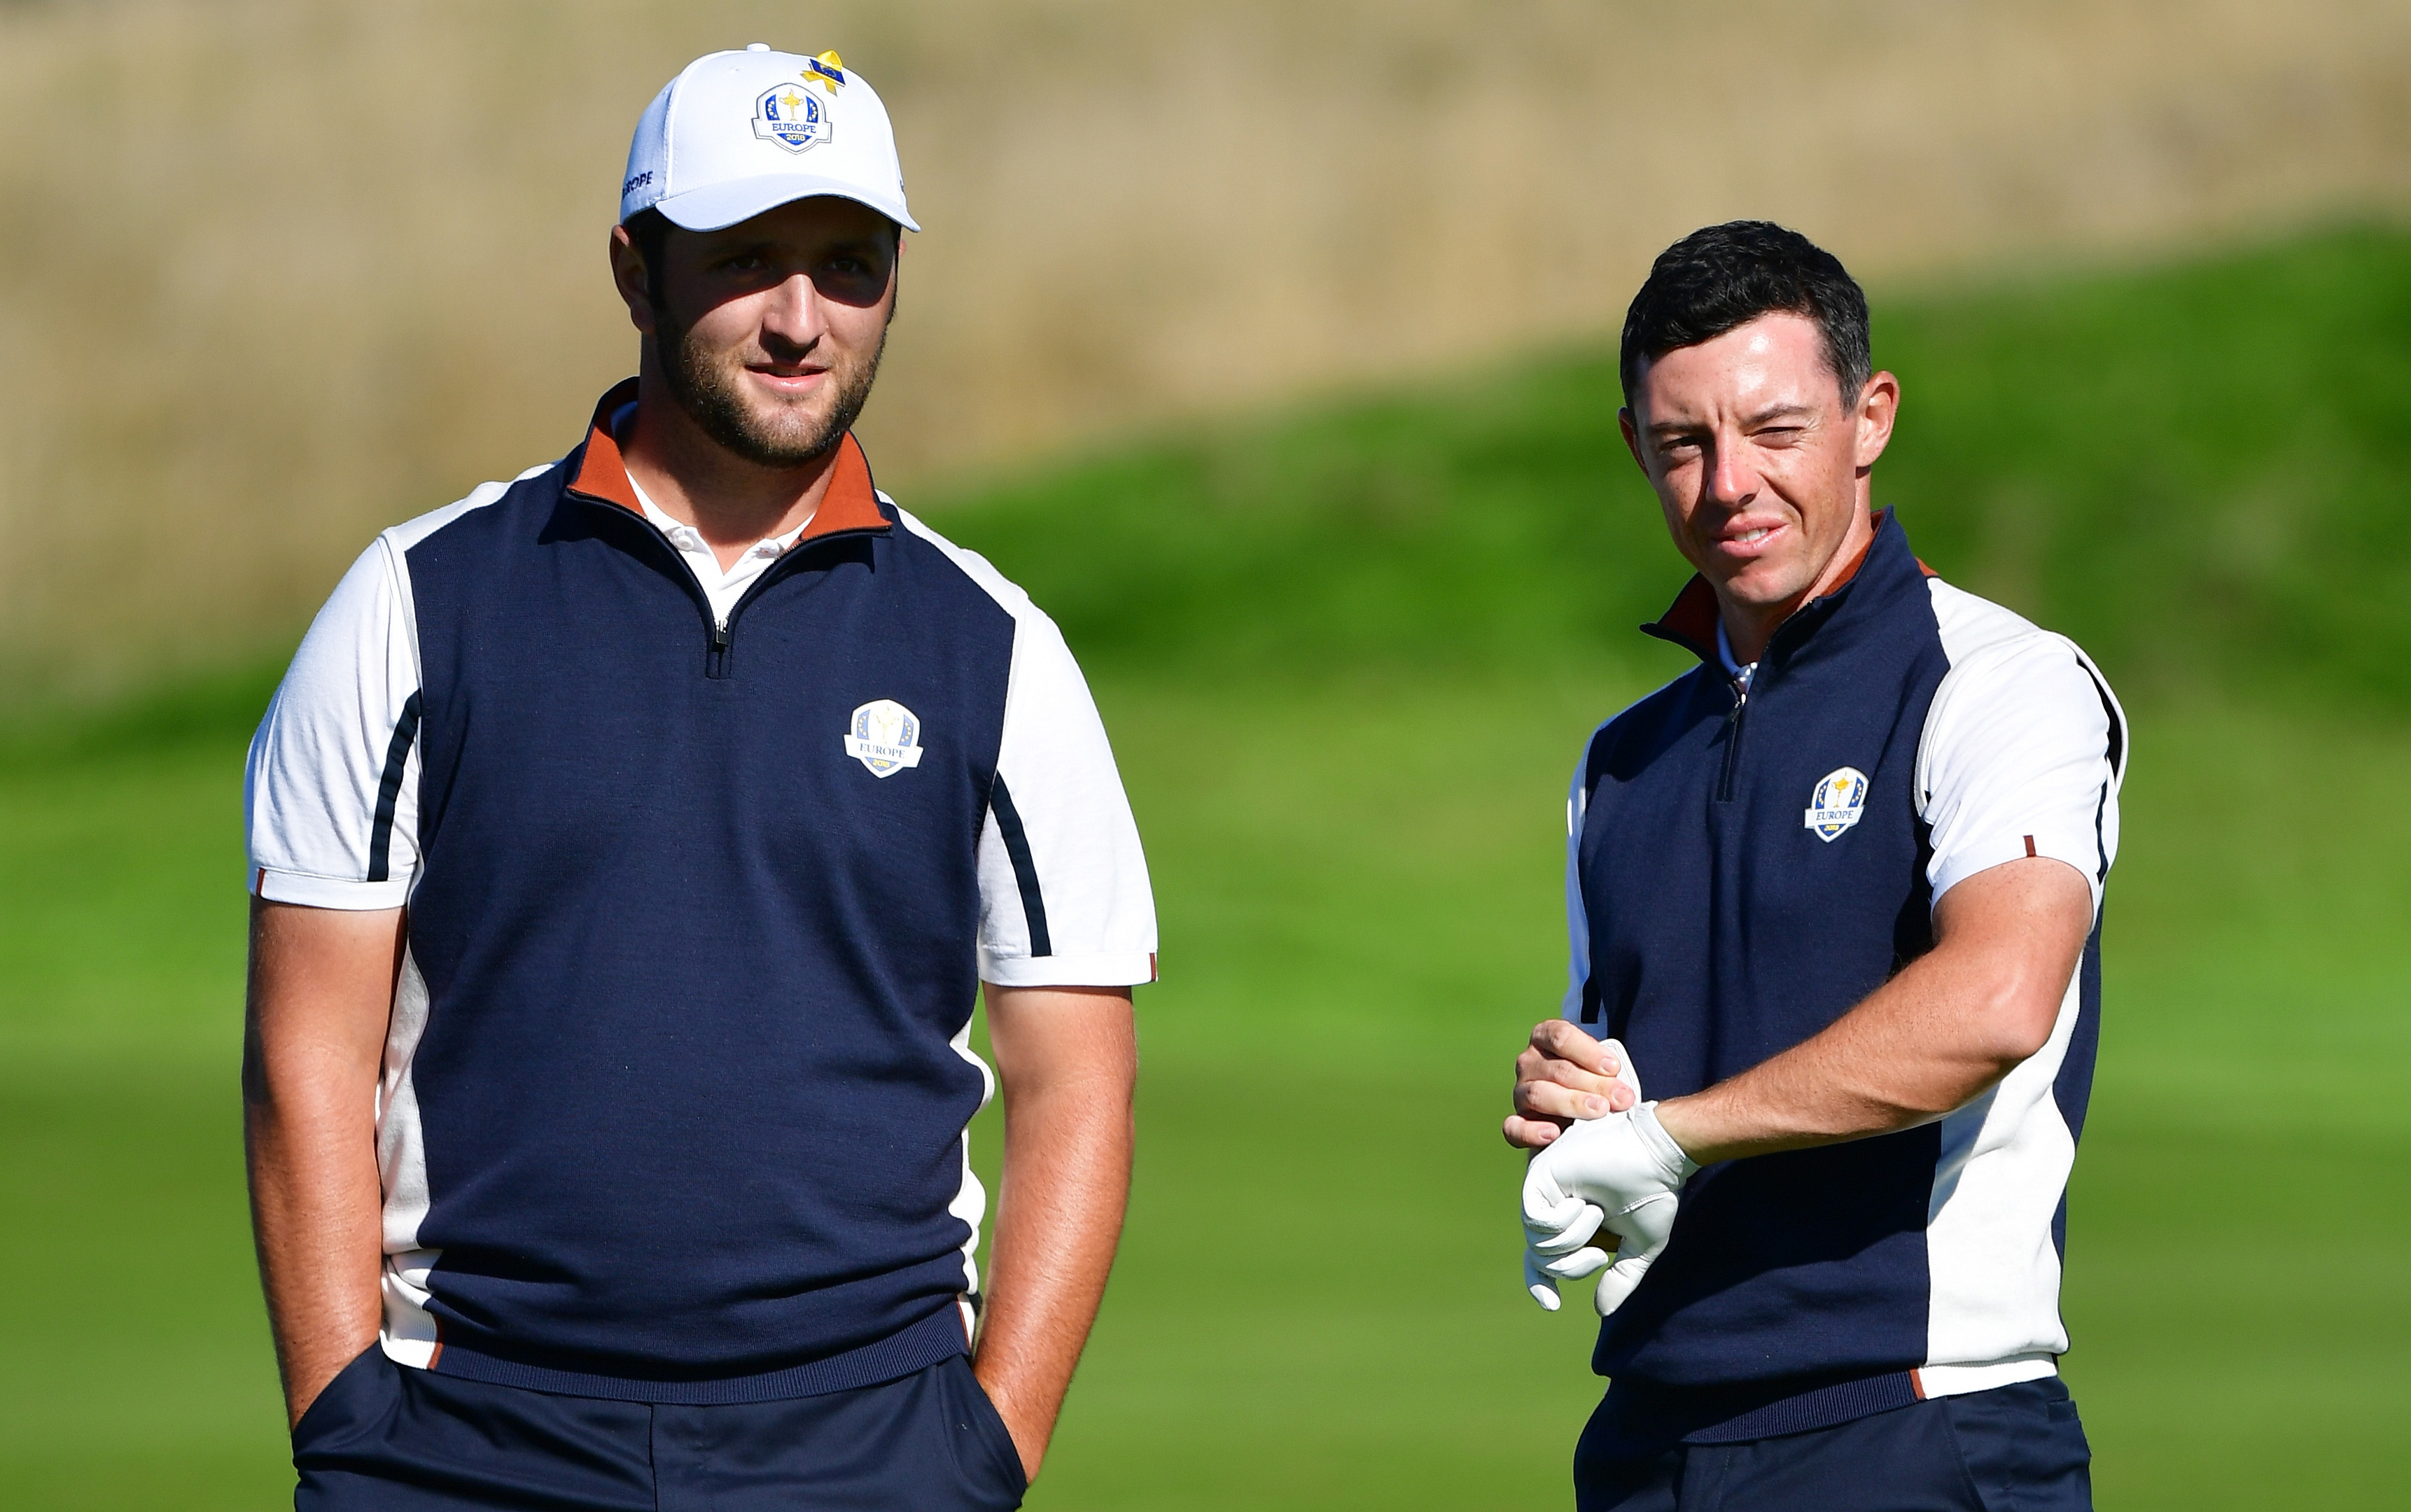 Rory McIlroy could be a partner for the excited Jon Rahm  for Europe this week.